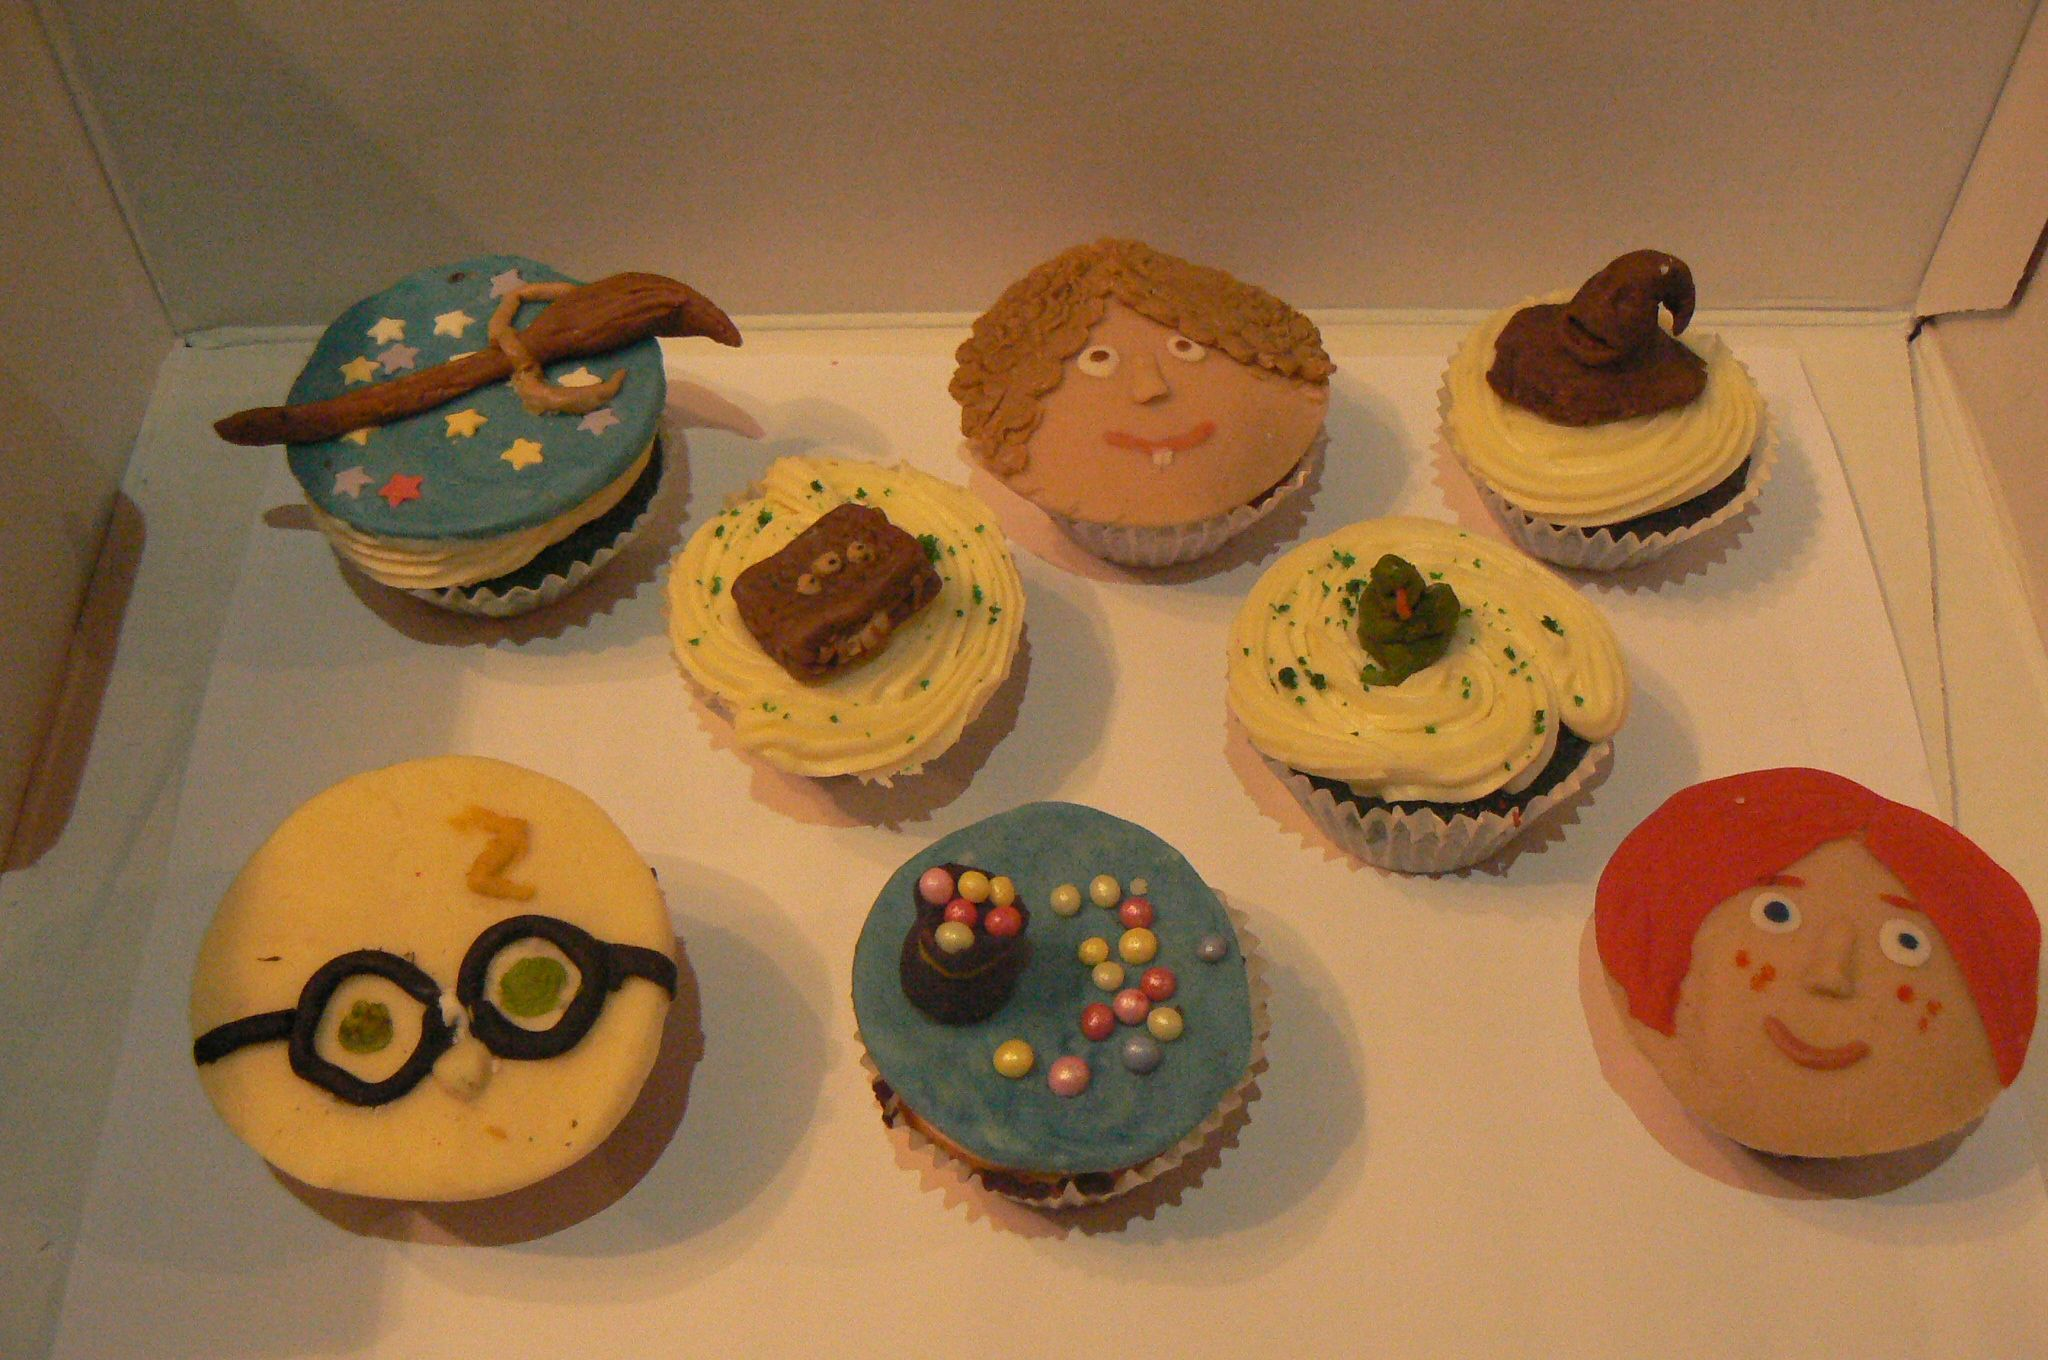 my harry potter cupcakes, made of modelling chocolate. each cupcake is also coloured for the houses.. :)